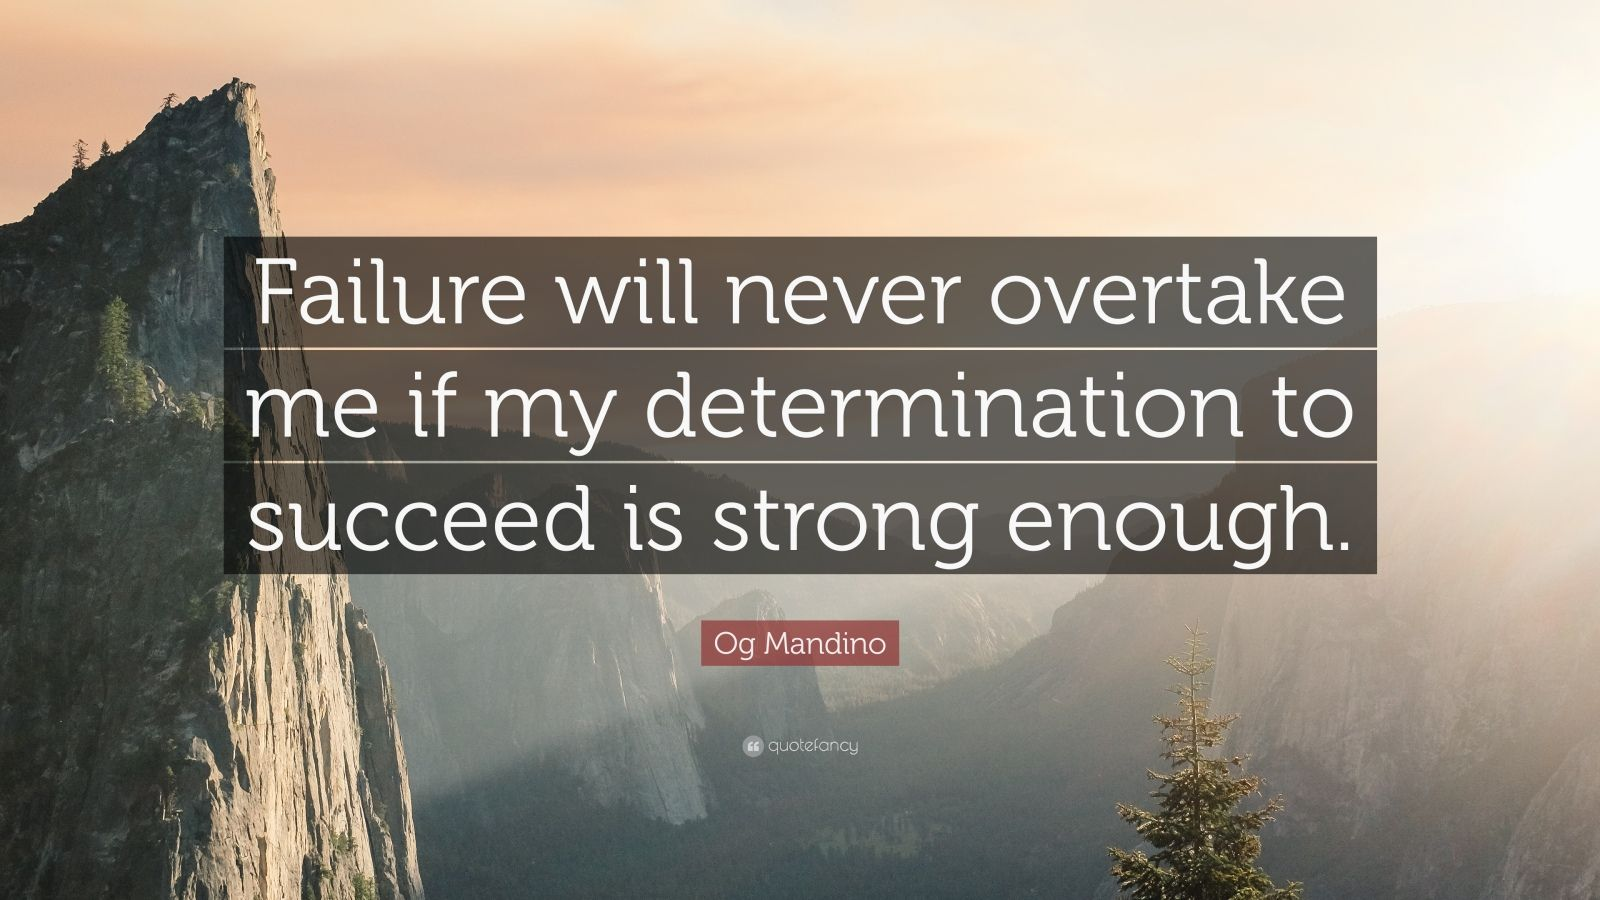 Brian Tracy Quotes Wallpaper Og Mandino Quote Failure Will Never Overtake Me If My